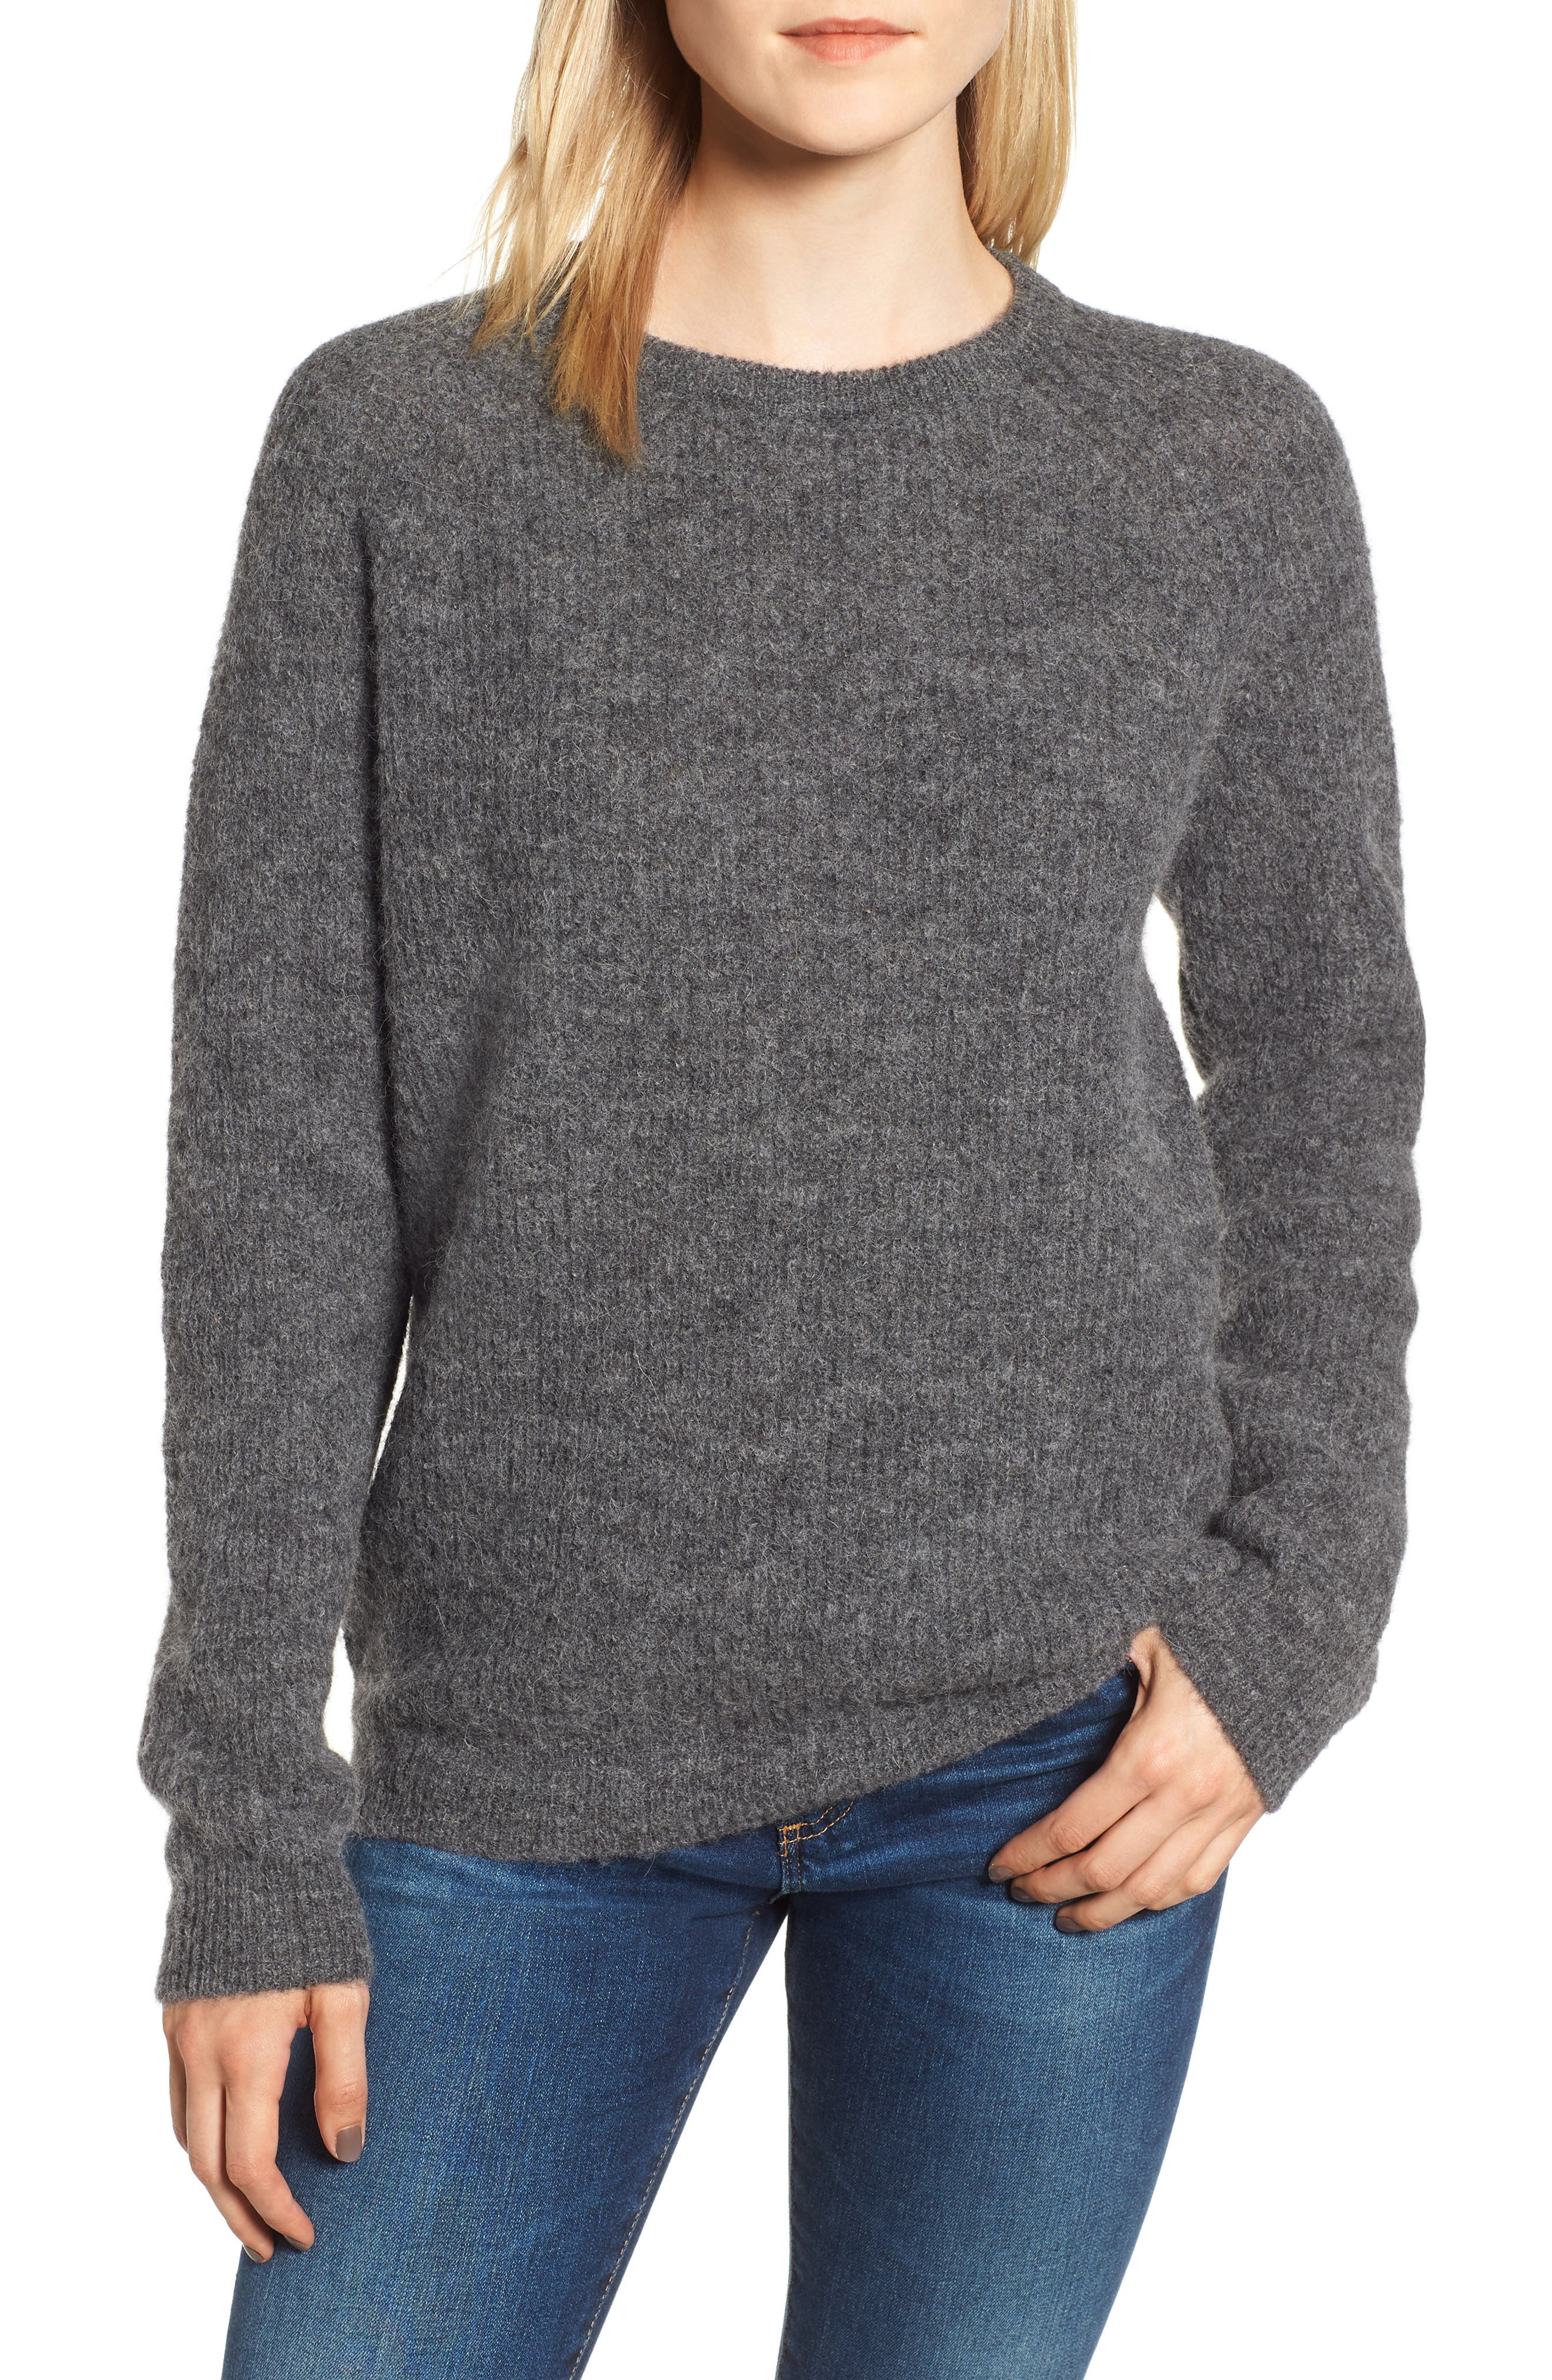 Olivia Crewneck Sweater,                         Main,                         color, DARK GREY MARL